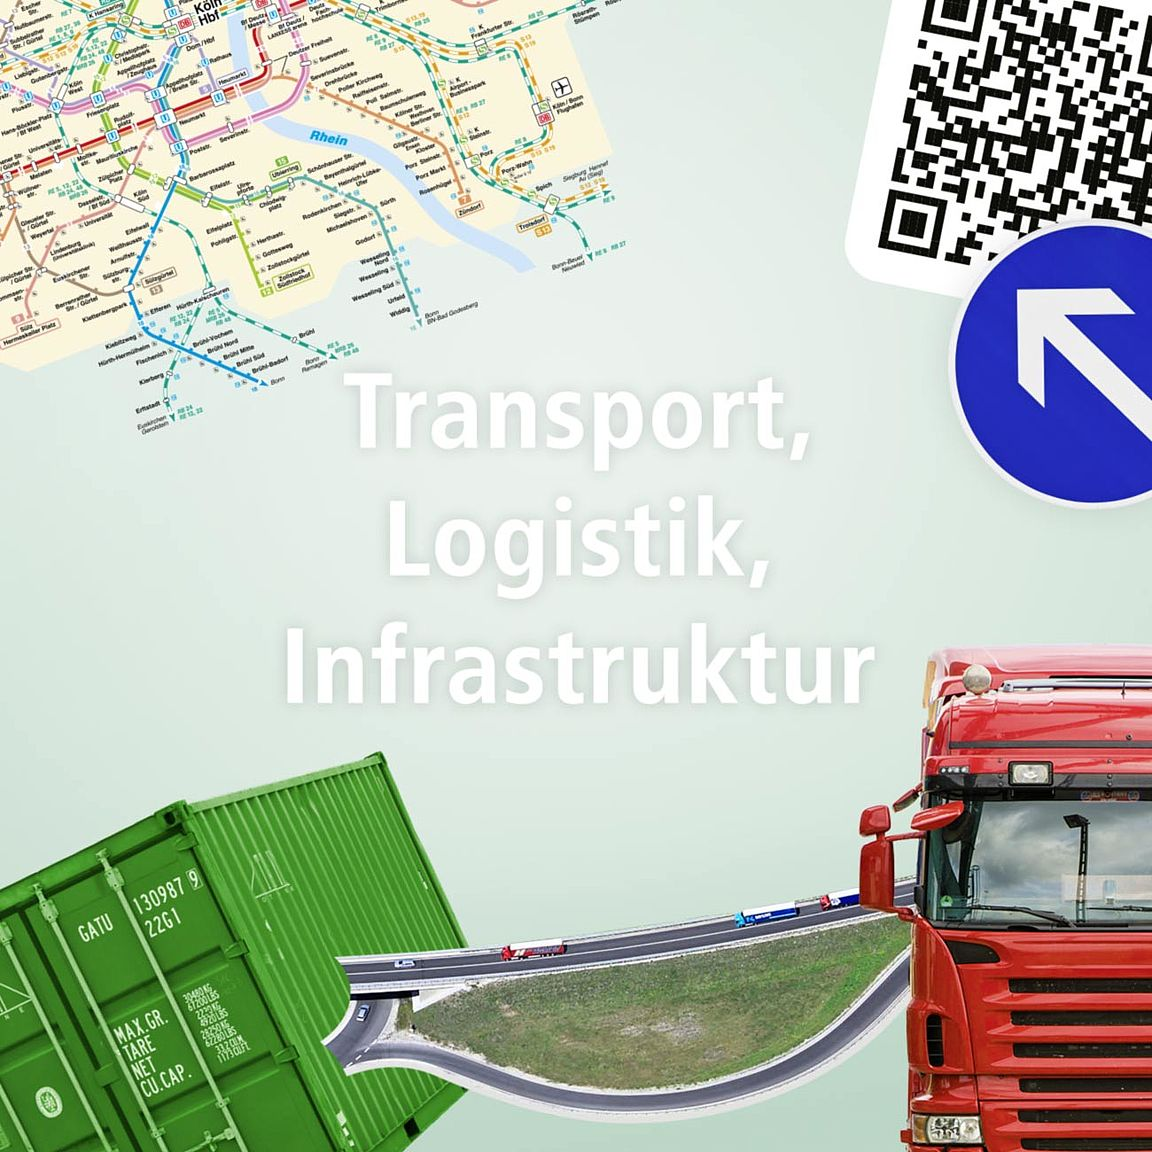 Transport, Logistik, Infrastruktur